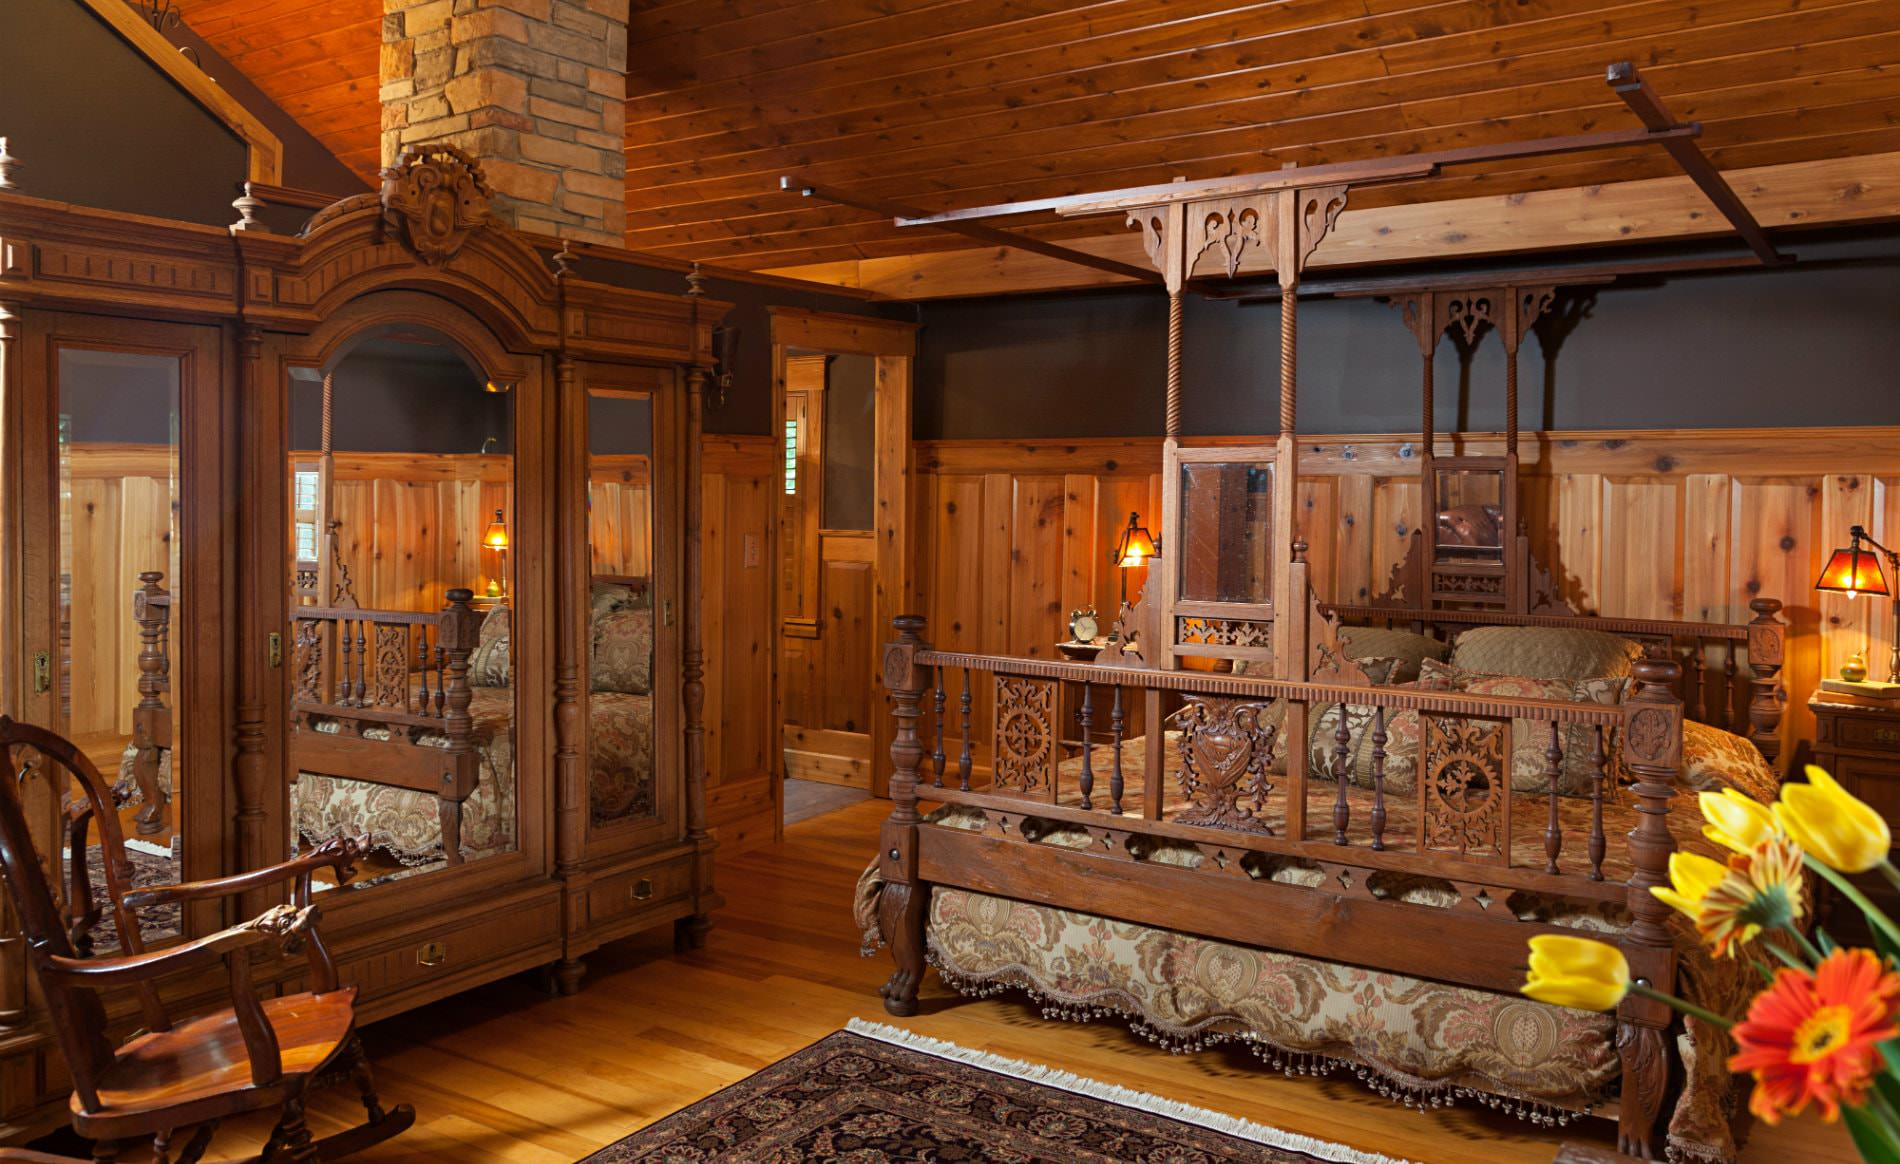 Rustic room with pine ceiling, walls and floor, elaborately carved king sized bed, and mirrored cabinet with triple doors